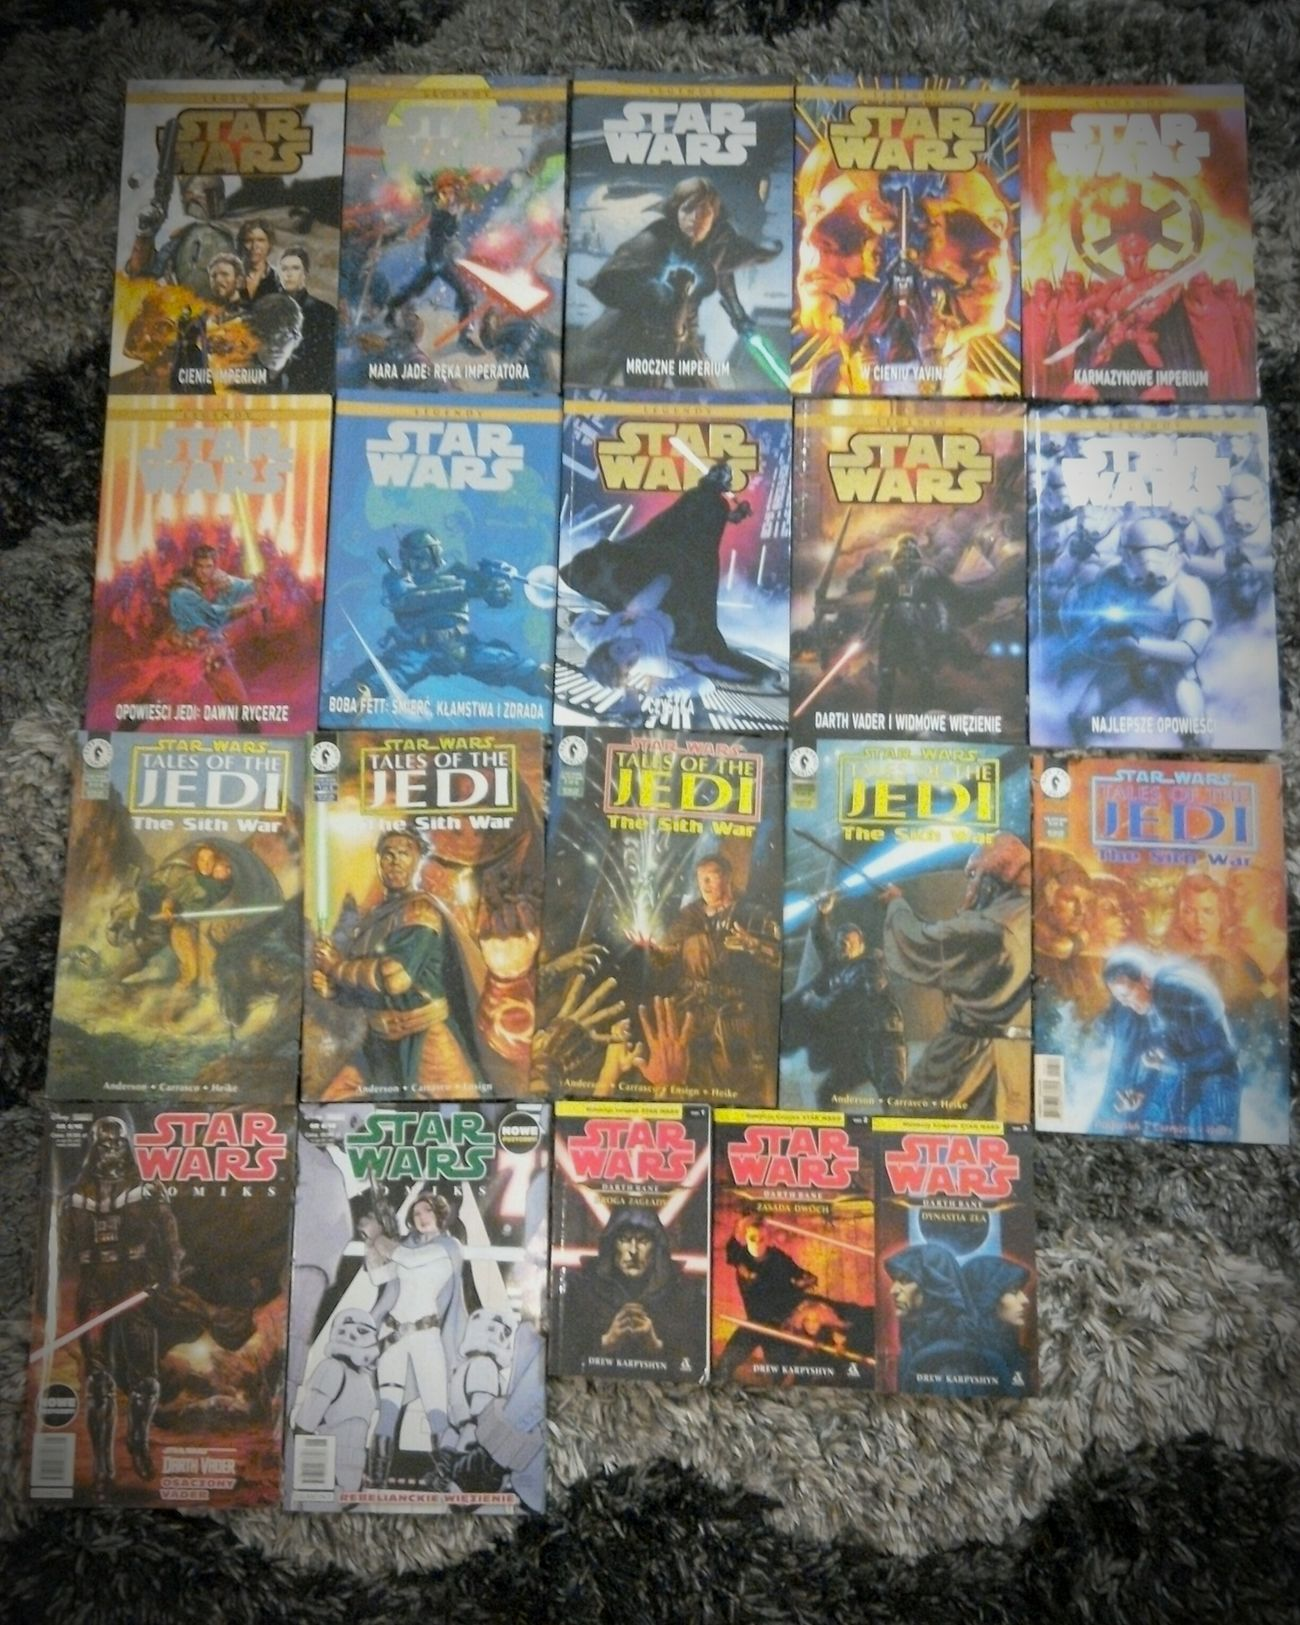 Star Wars for ever ♥ Star Wars Star Wars Love Star Wars Collectables Star Wars Fun Star Wars Inspired Star Wars Fan Books Comics Star Wars Comics Star Wars Collection